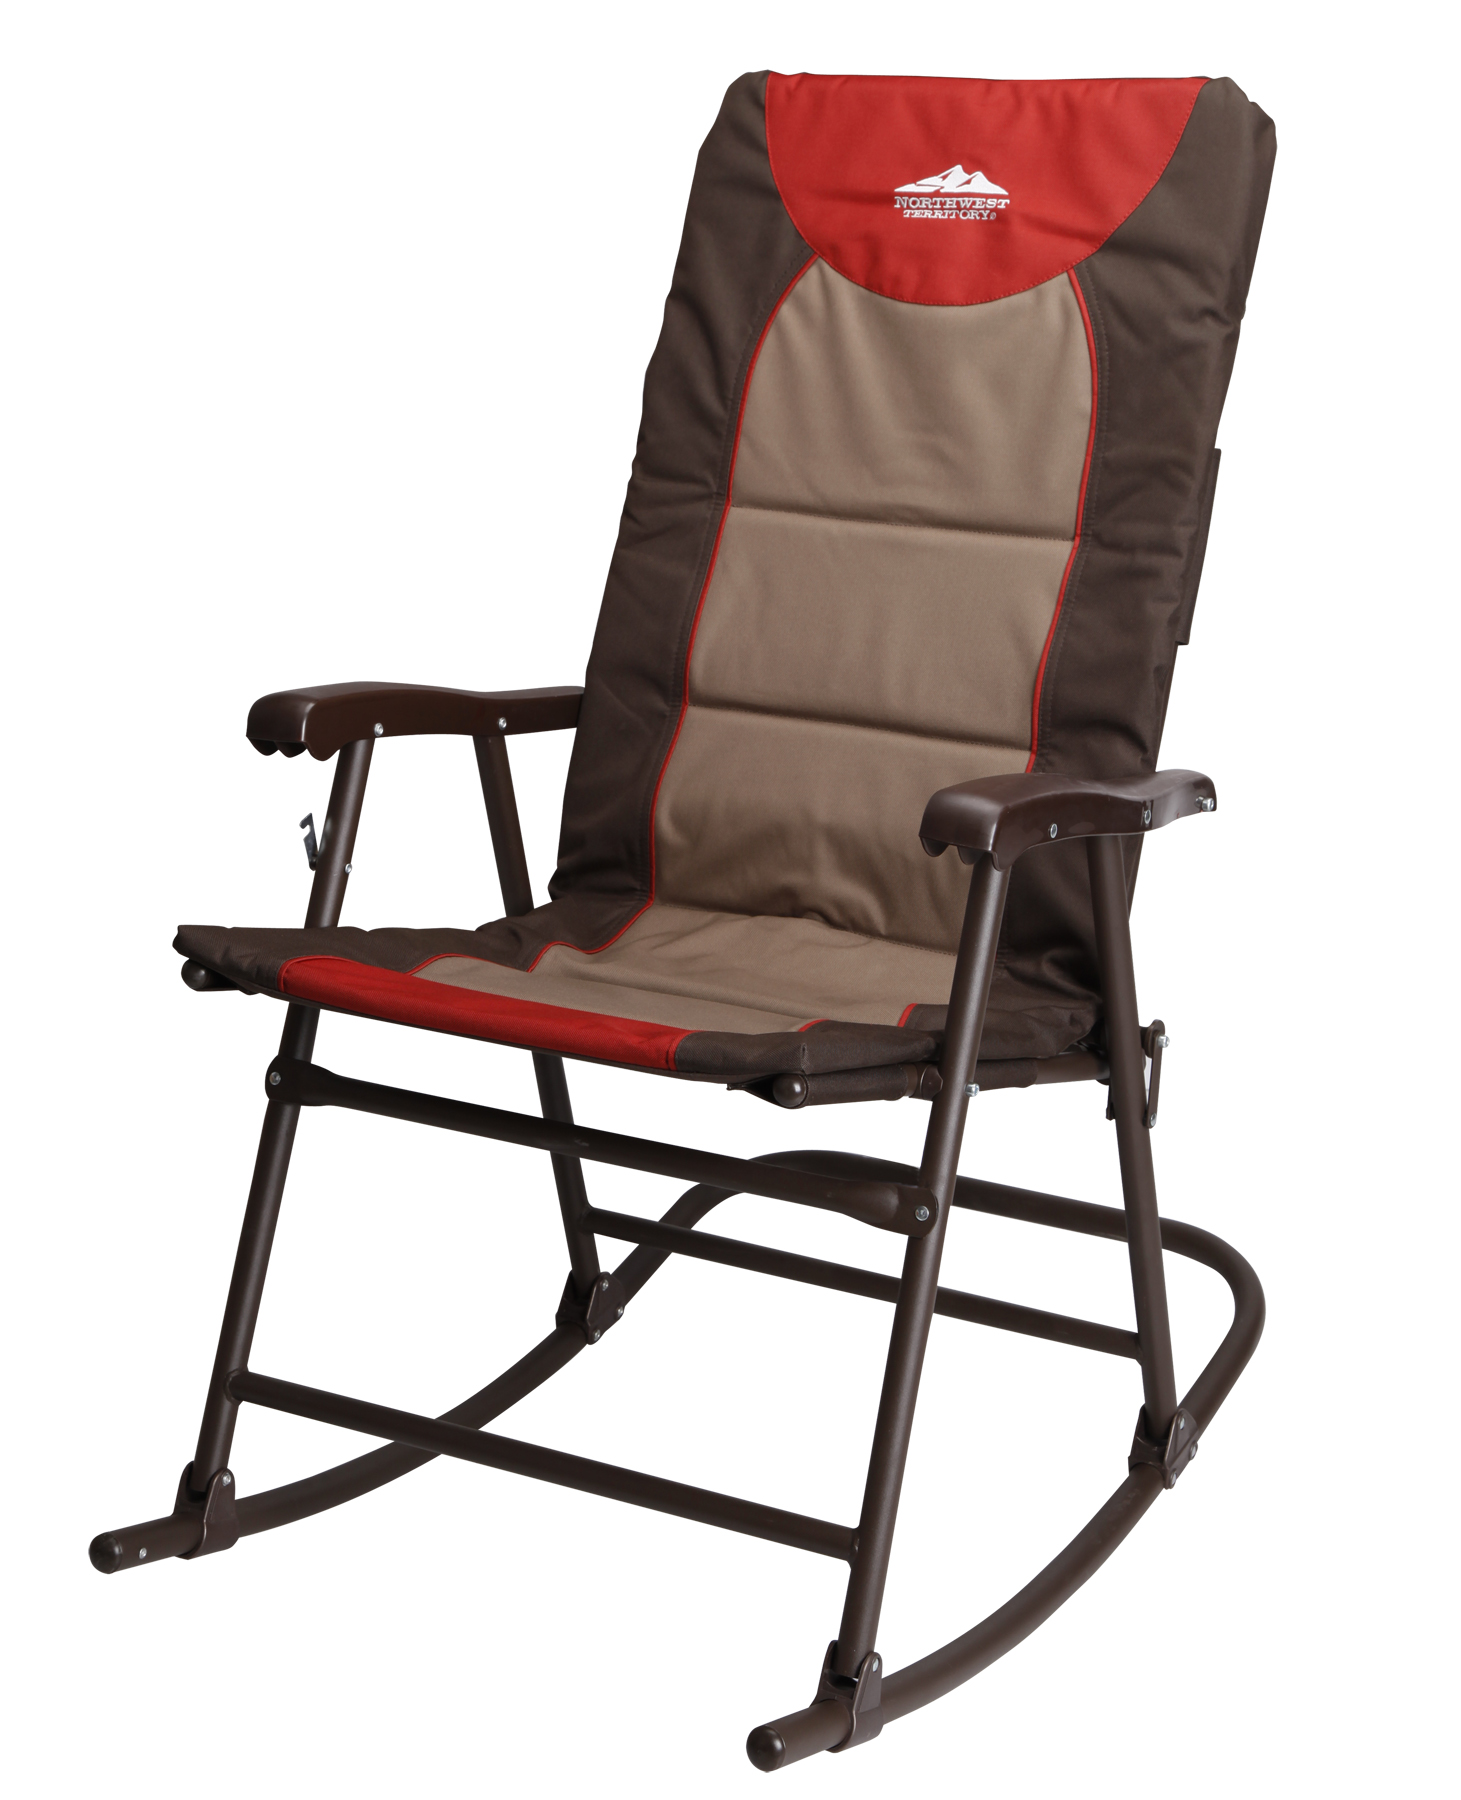 Camp Rocking Chair Campsite Rocking Chair Portable Stylish Seating From Kmart